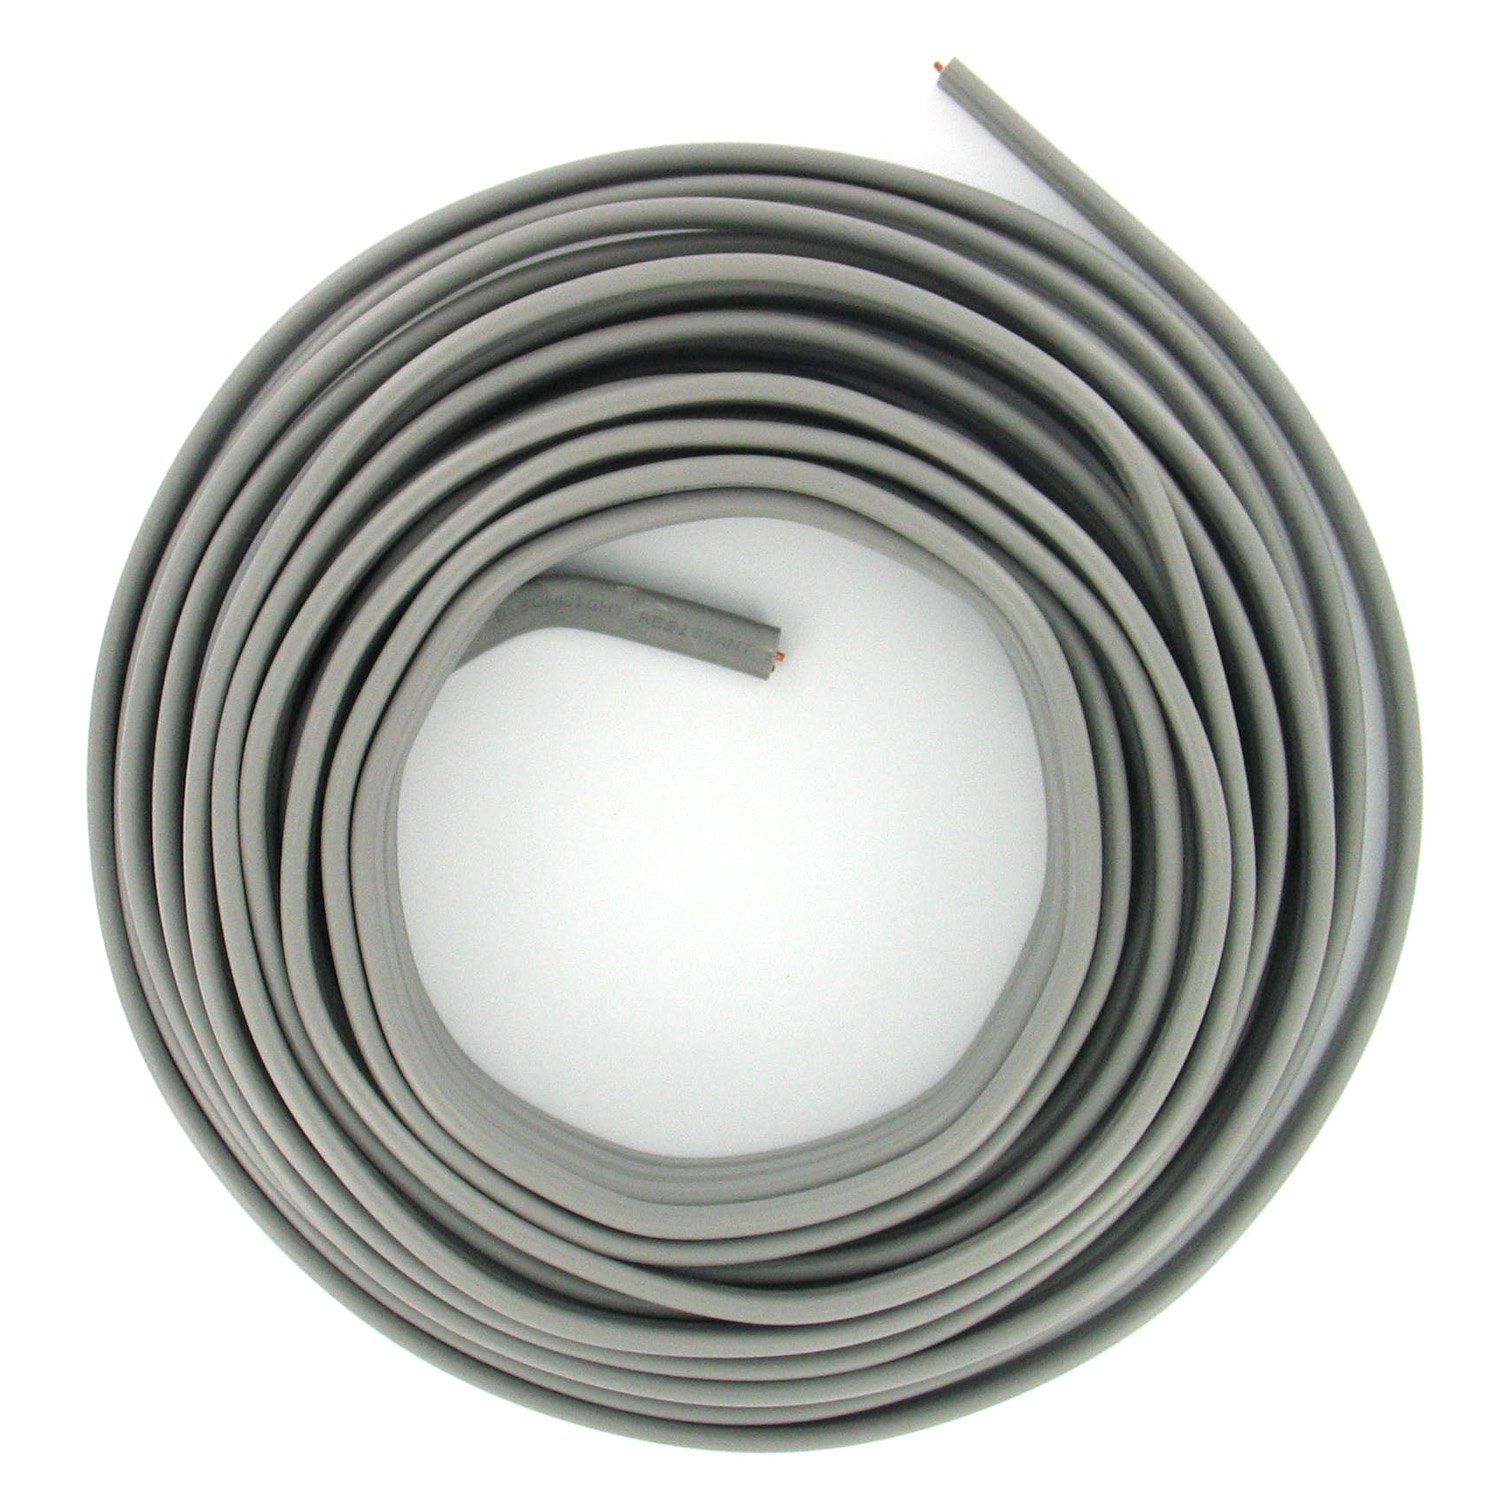 Cerro 138 1602br 50 Feet 12 2 Uf With Ground Wire Gray Electrical Cable Copper Gauge Romex Simpull Cables